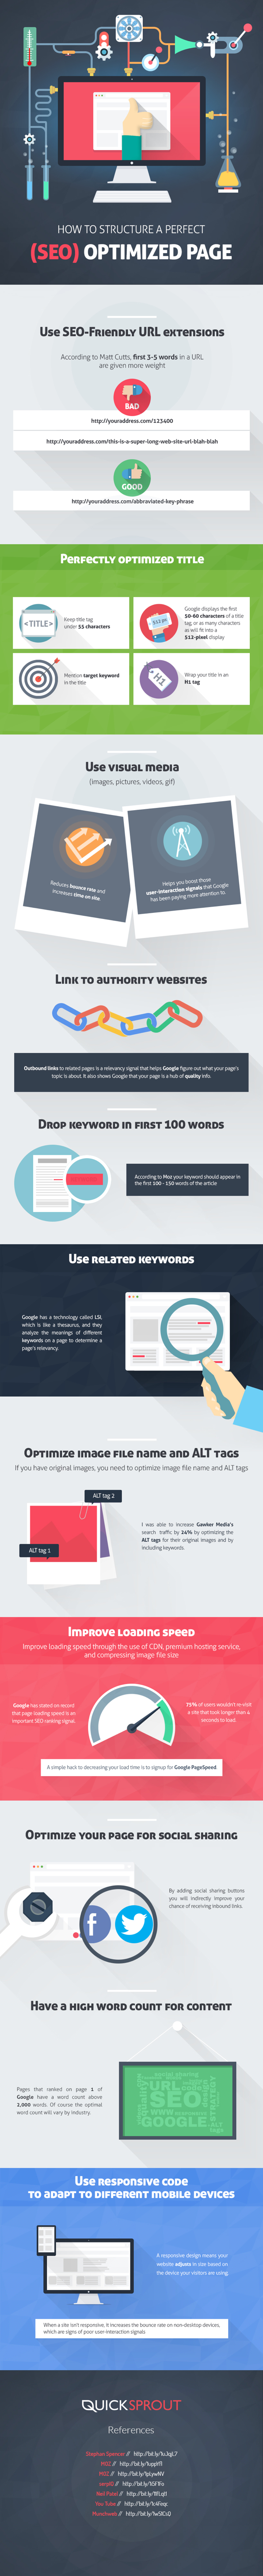 How to Optimize Your Web Page for Search Engines image